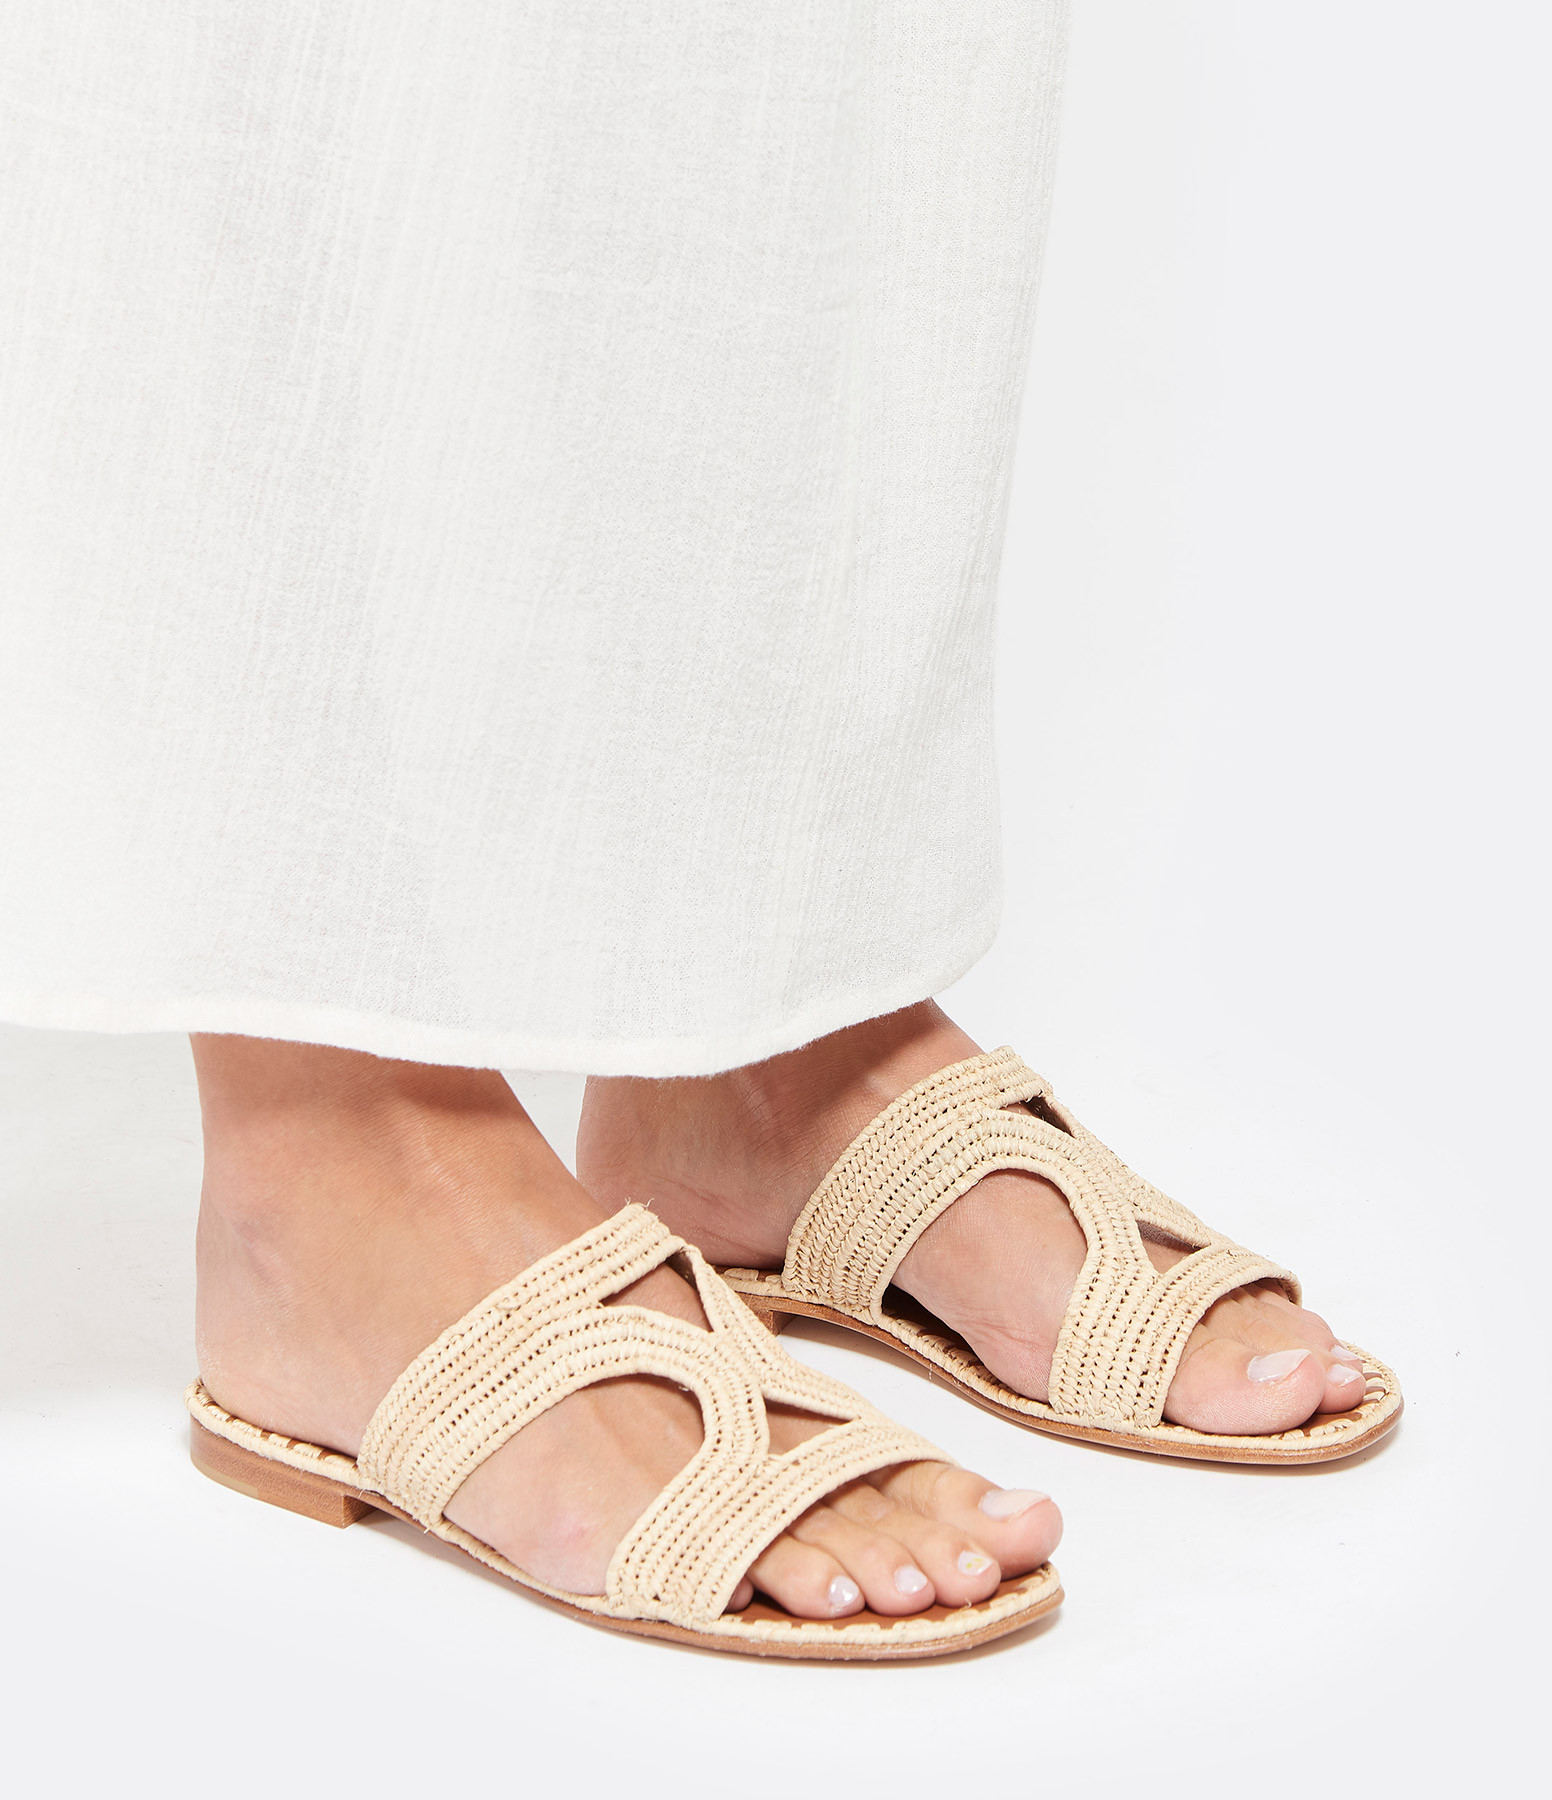 CARRIE FORBES - Mules Moha Raffia Naturel